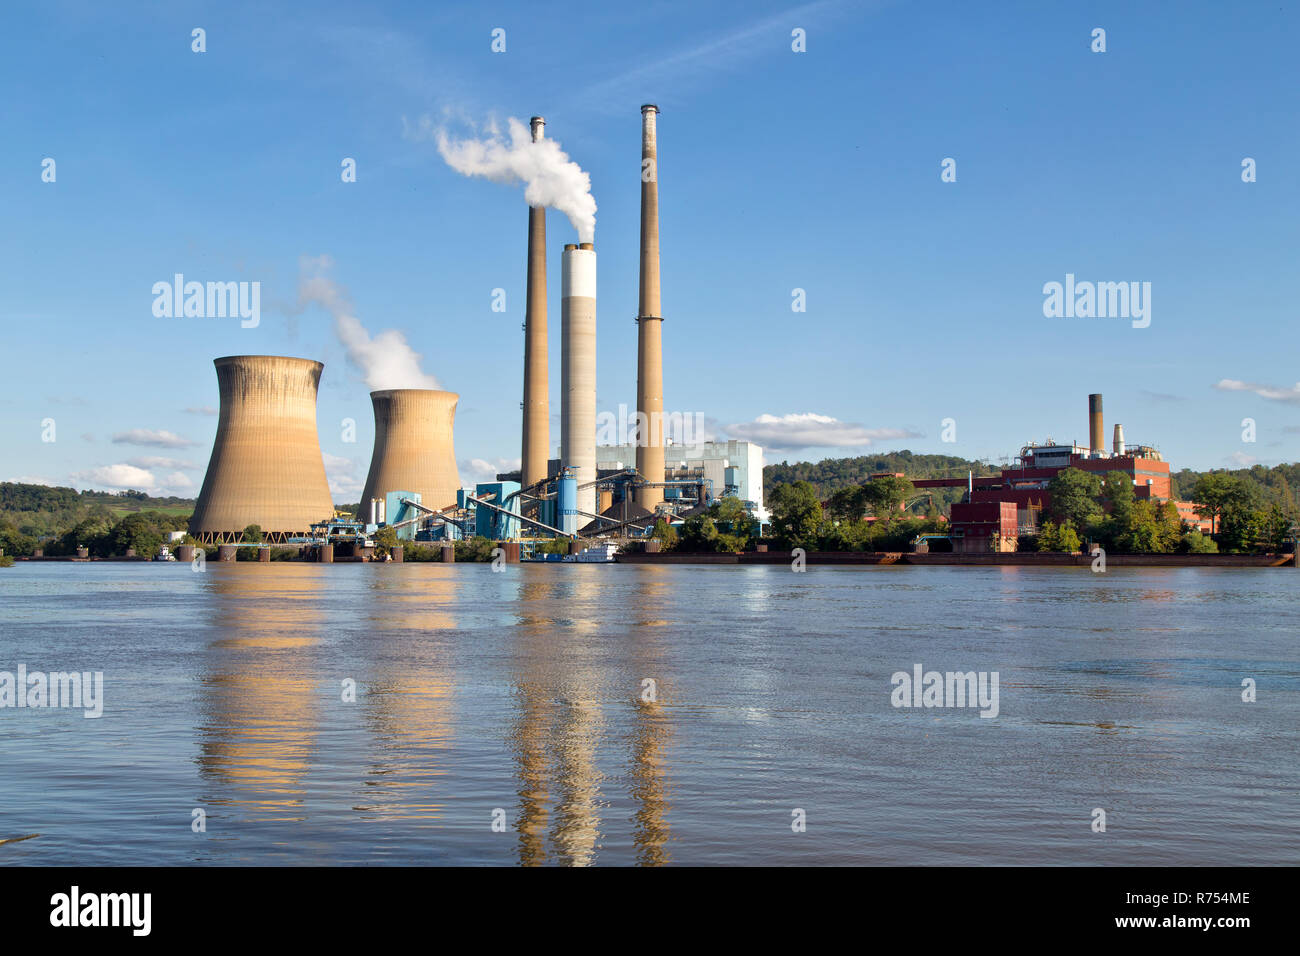 Pleasants Power Station operating,  1.3-gigawatt coal power plant, located on the Ohio River, Willow Island,  near Belmont. - Stock Image